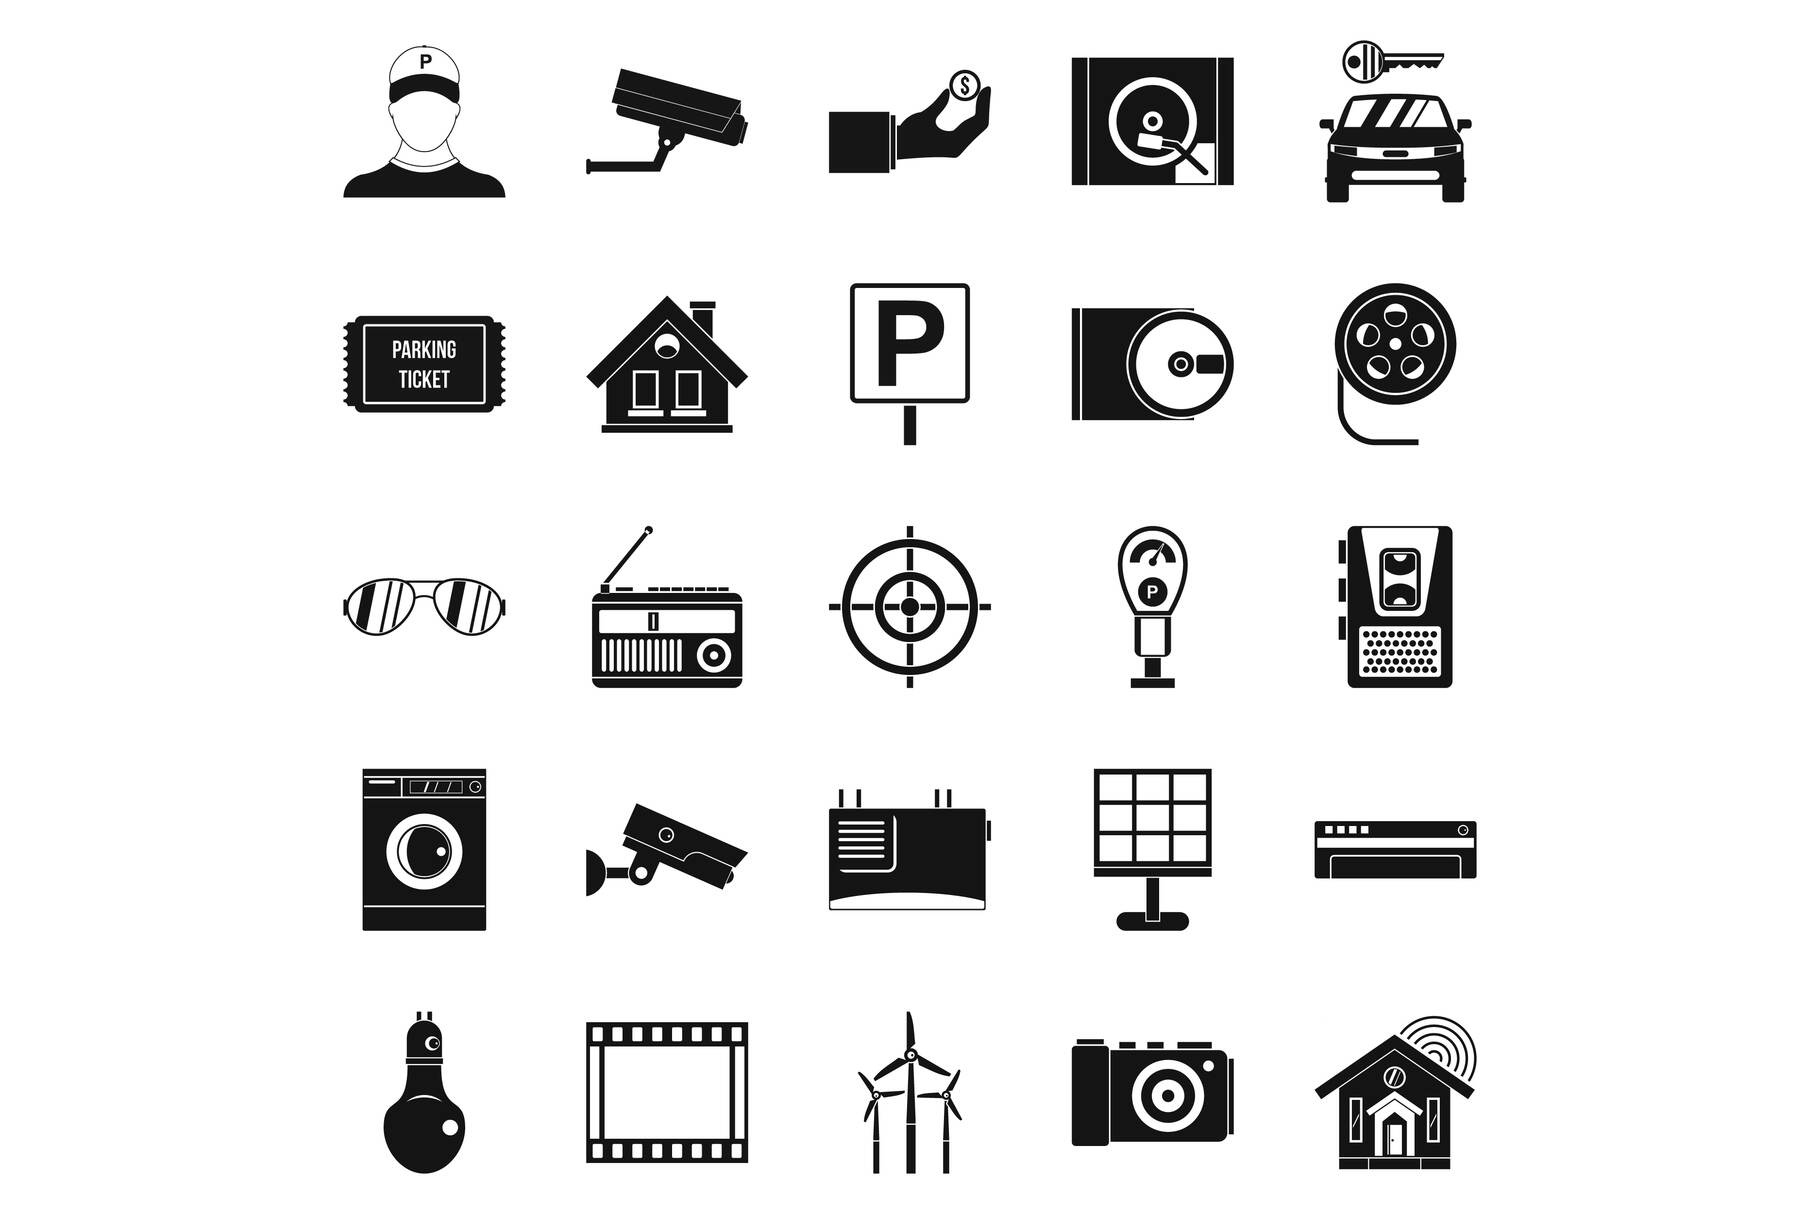 Surveillance cameras icons set, simple style example image 1